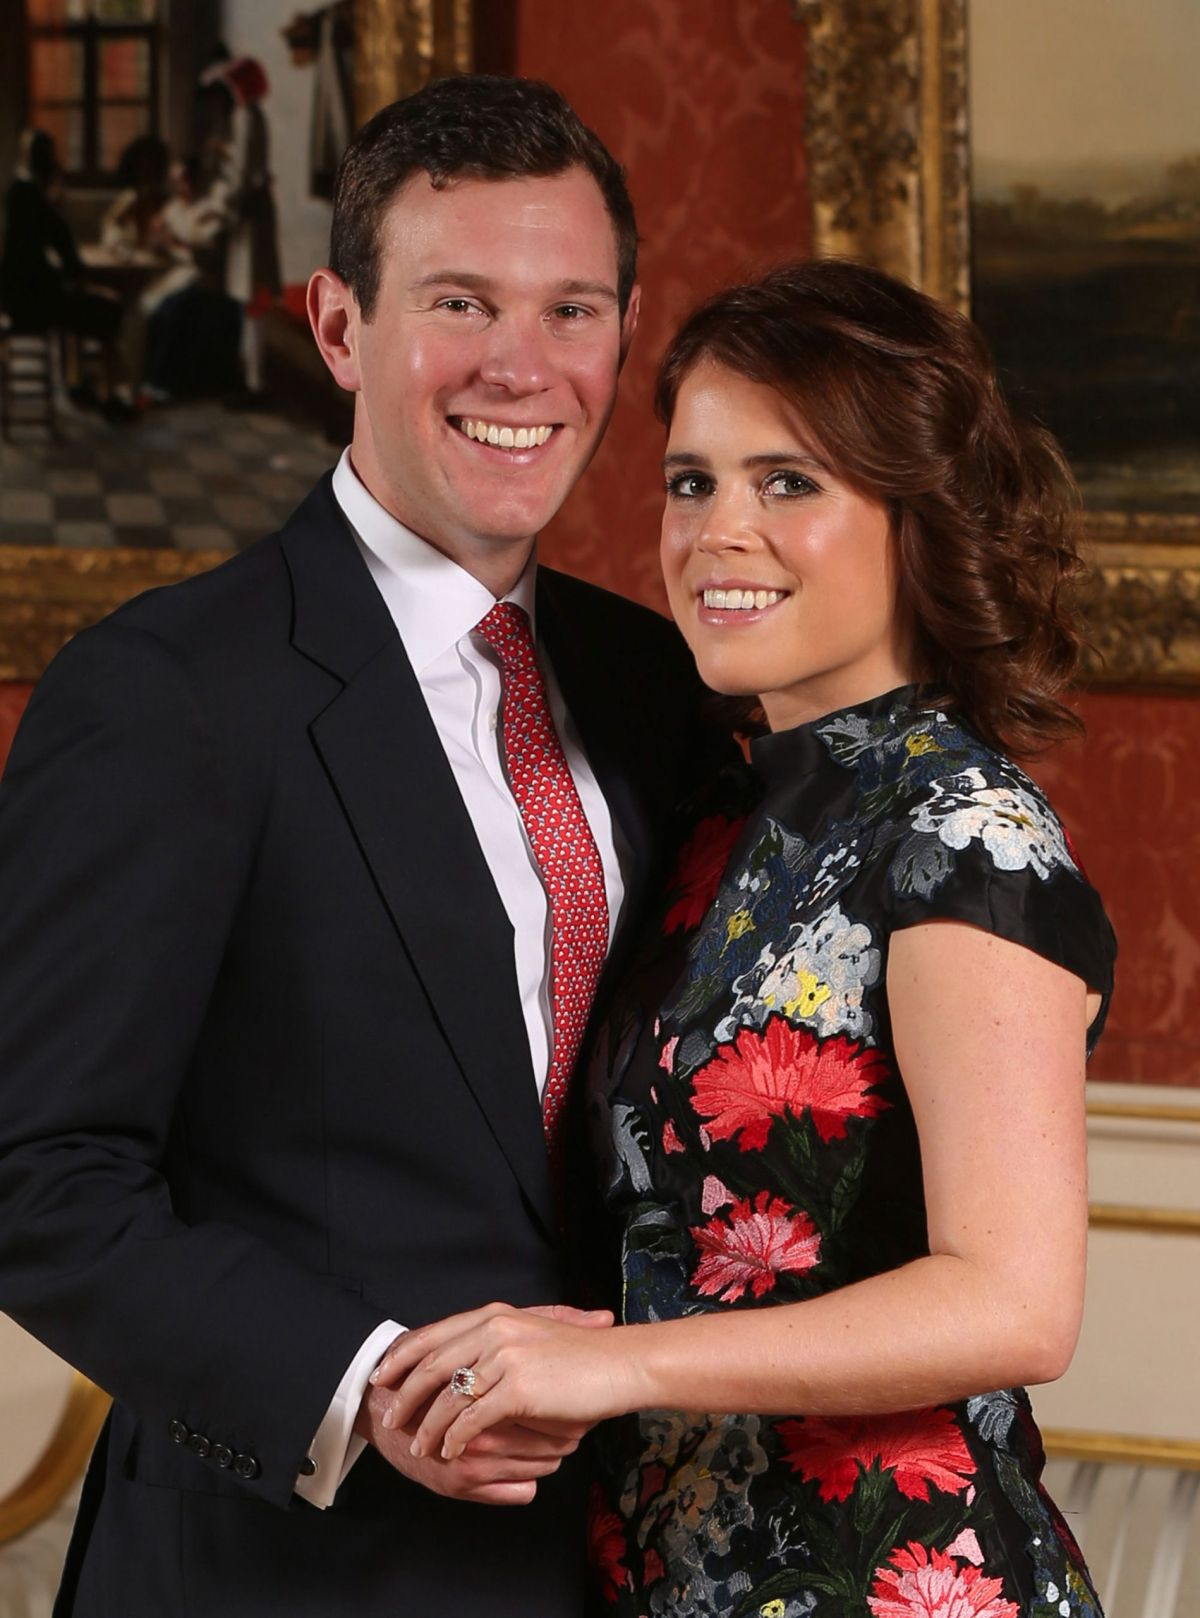 The sweetest royal facts about Princess Eugenie fans never even knew